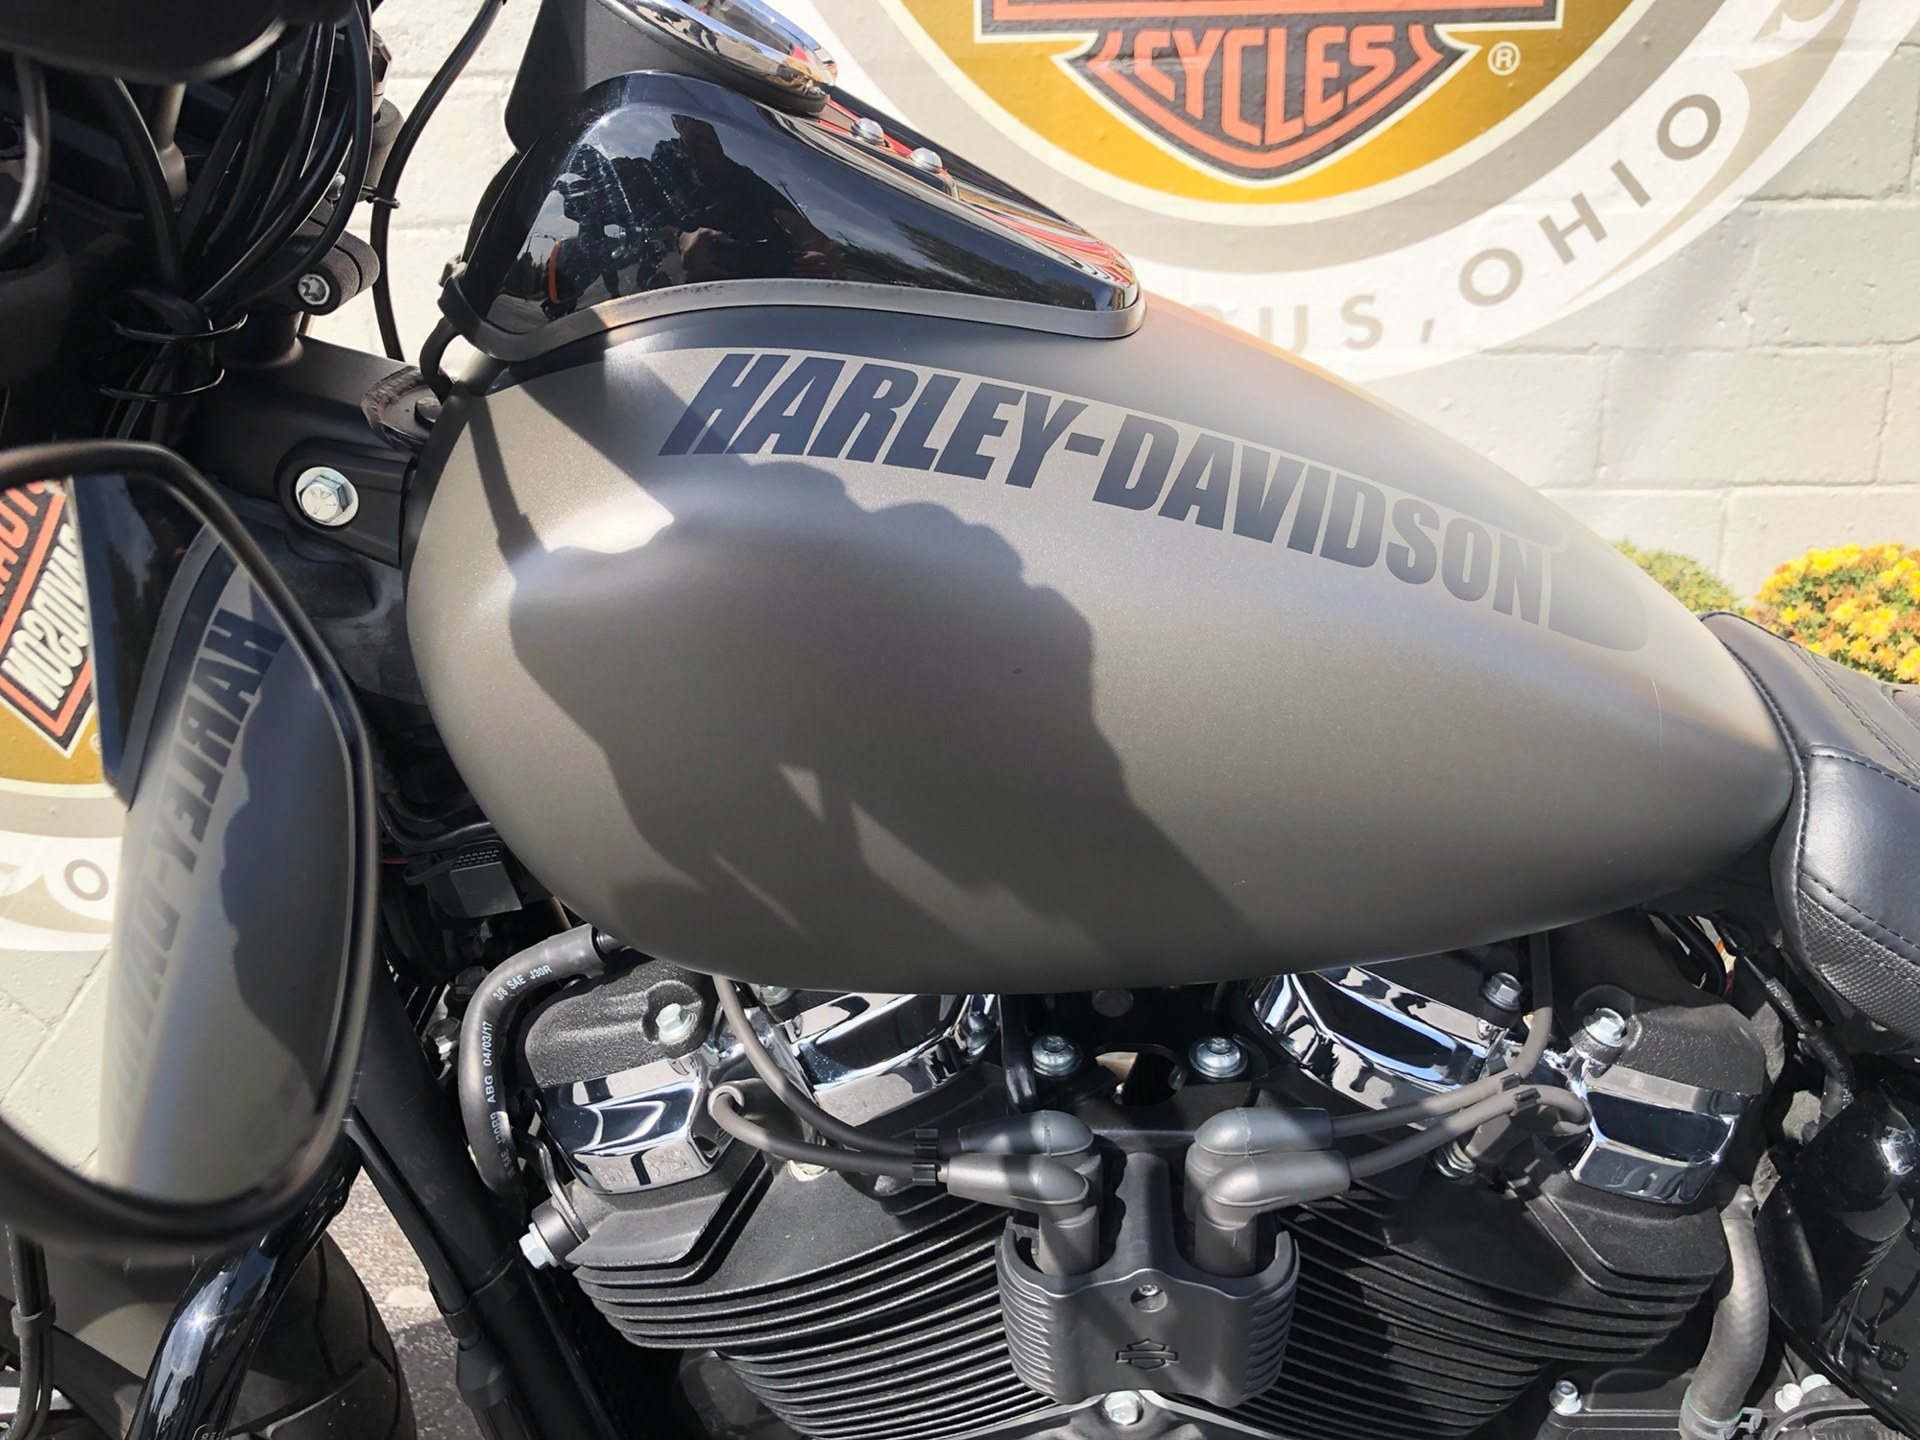 2018 Harley-Davidson FXFBS in Sunbury, Ohio - Photo 7